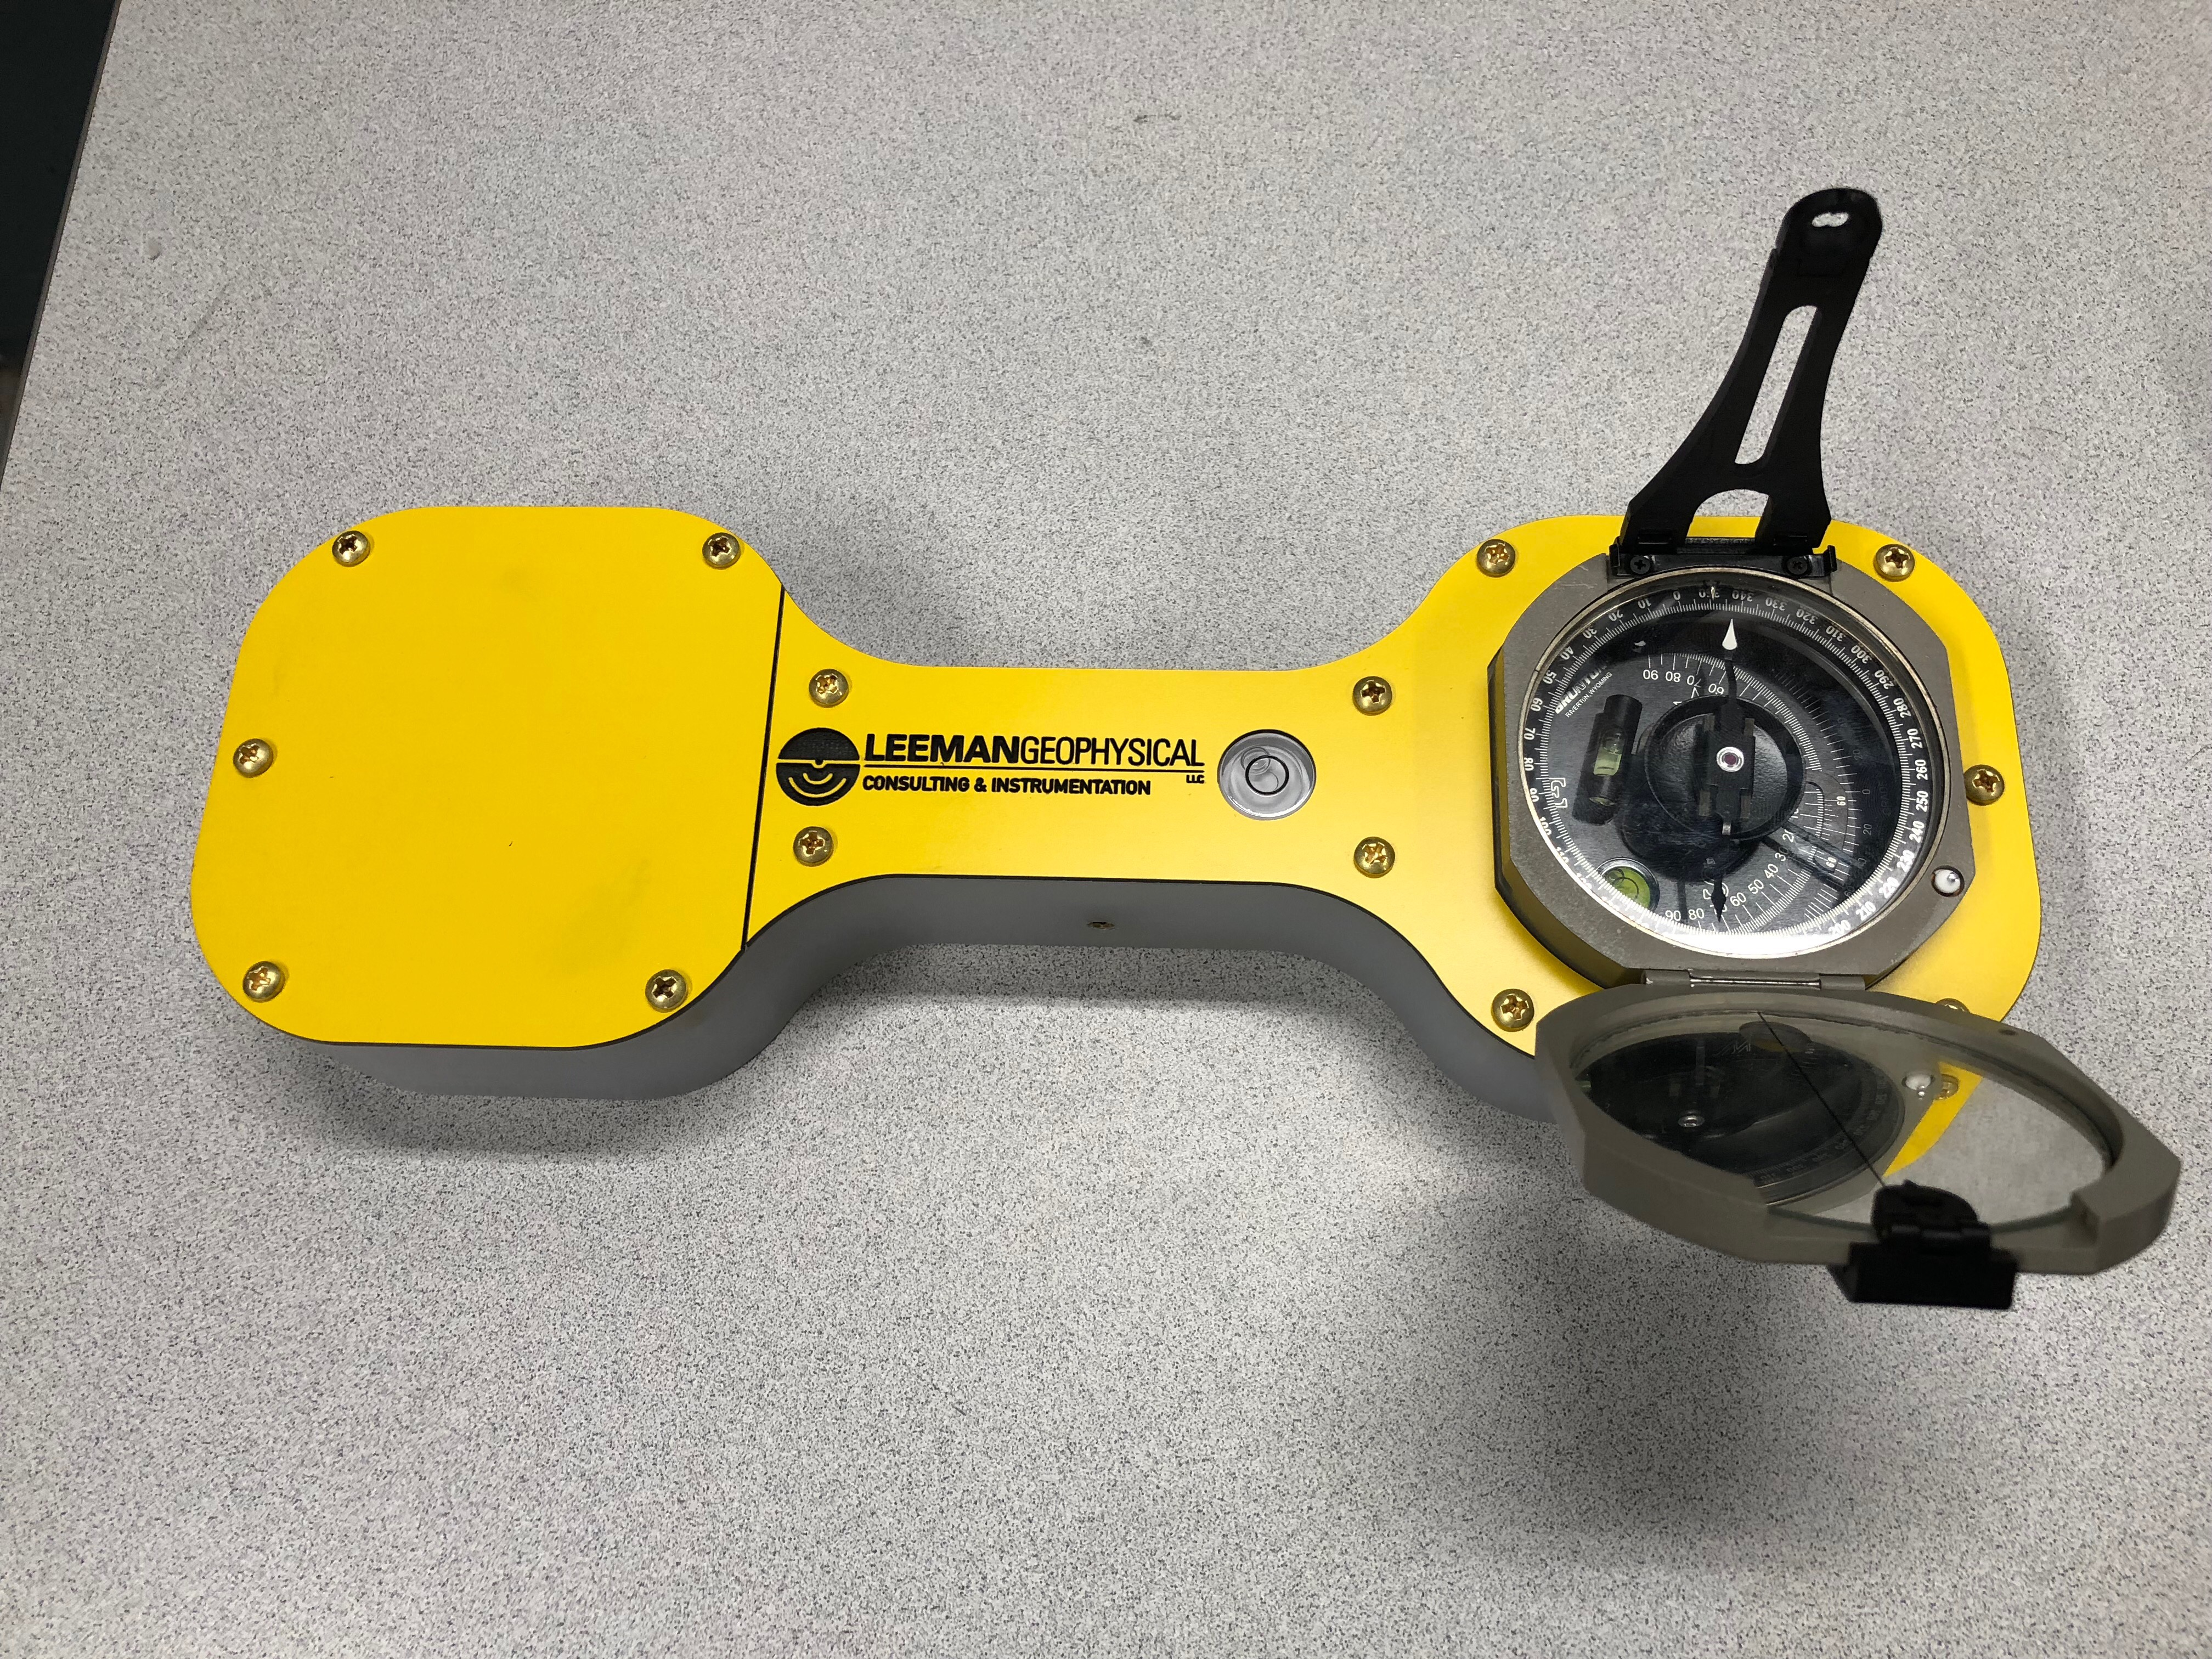 View of the tool with compass installed